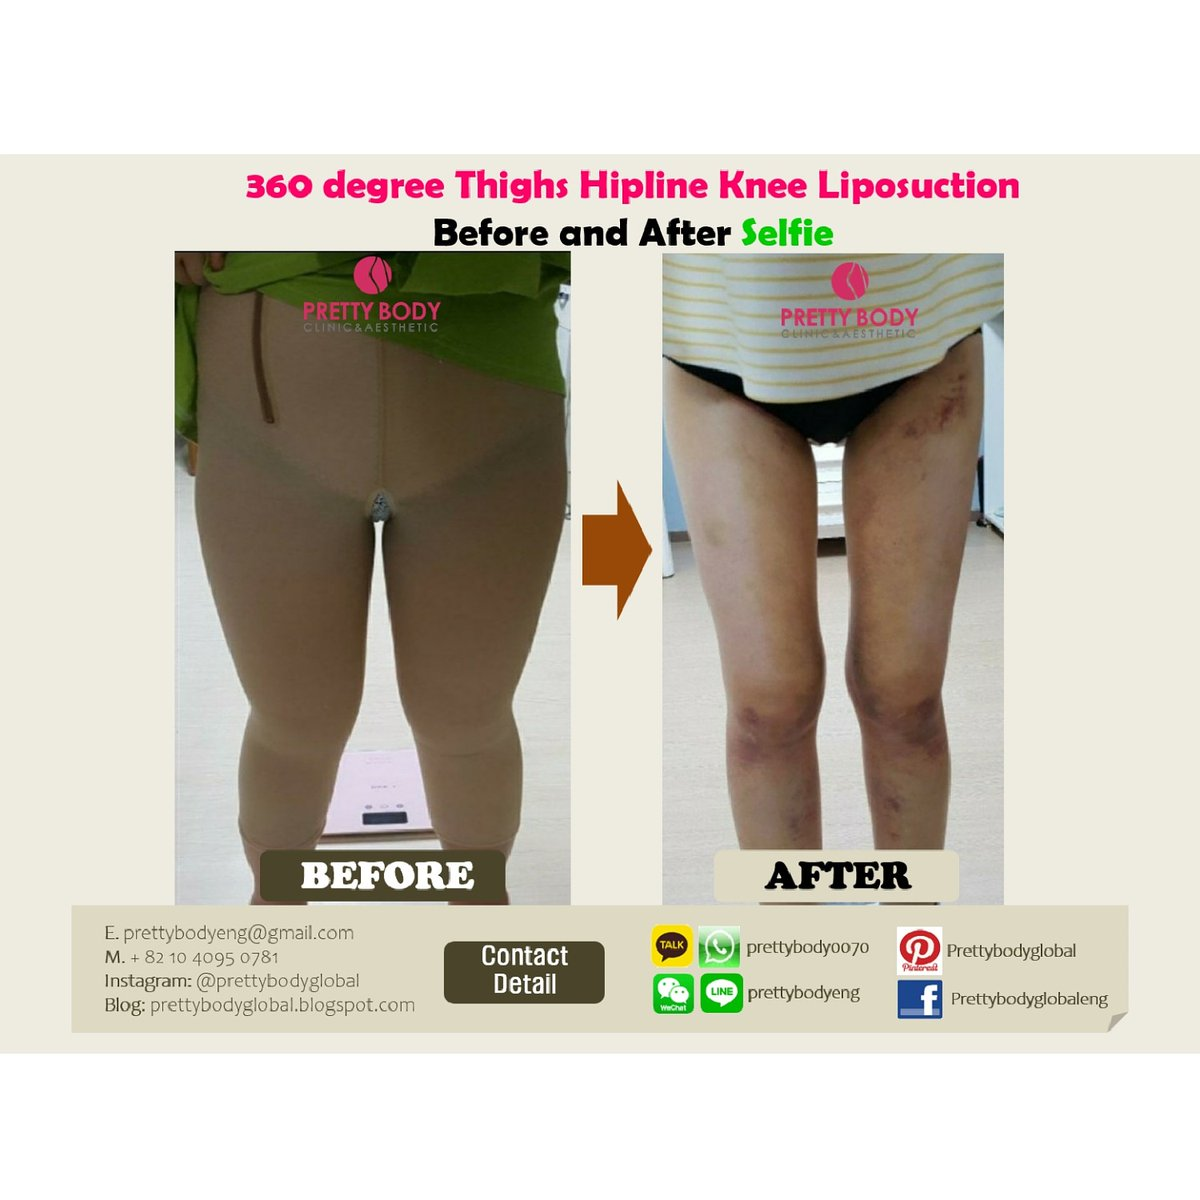 Pretty Body Clinic_360 degree thighs hipline knee lippsuction selfie with review with Dr. Lim, Kyung-Soo #prettybodyclinic #liposuction # seoul #review #thighs #Korea #plasticsurgery #selfie #liposuctionbeforeandafter